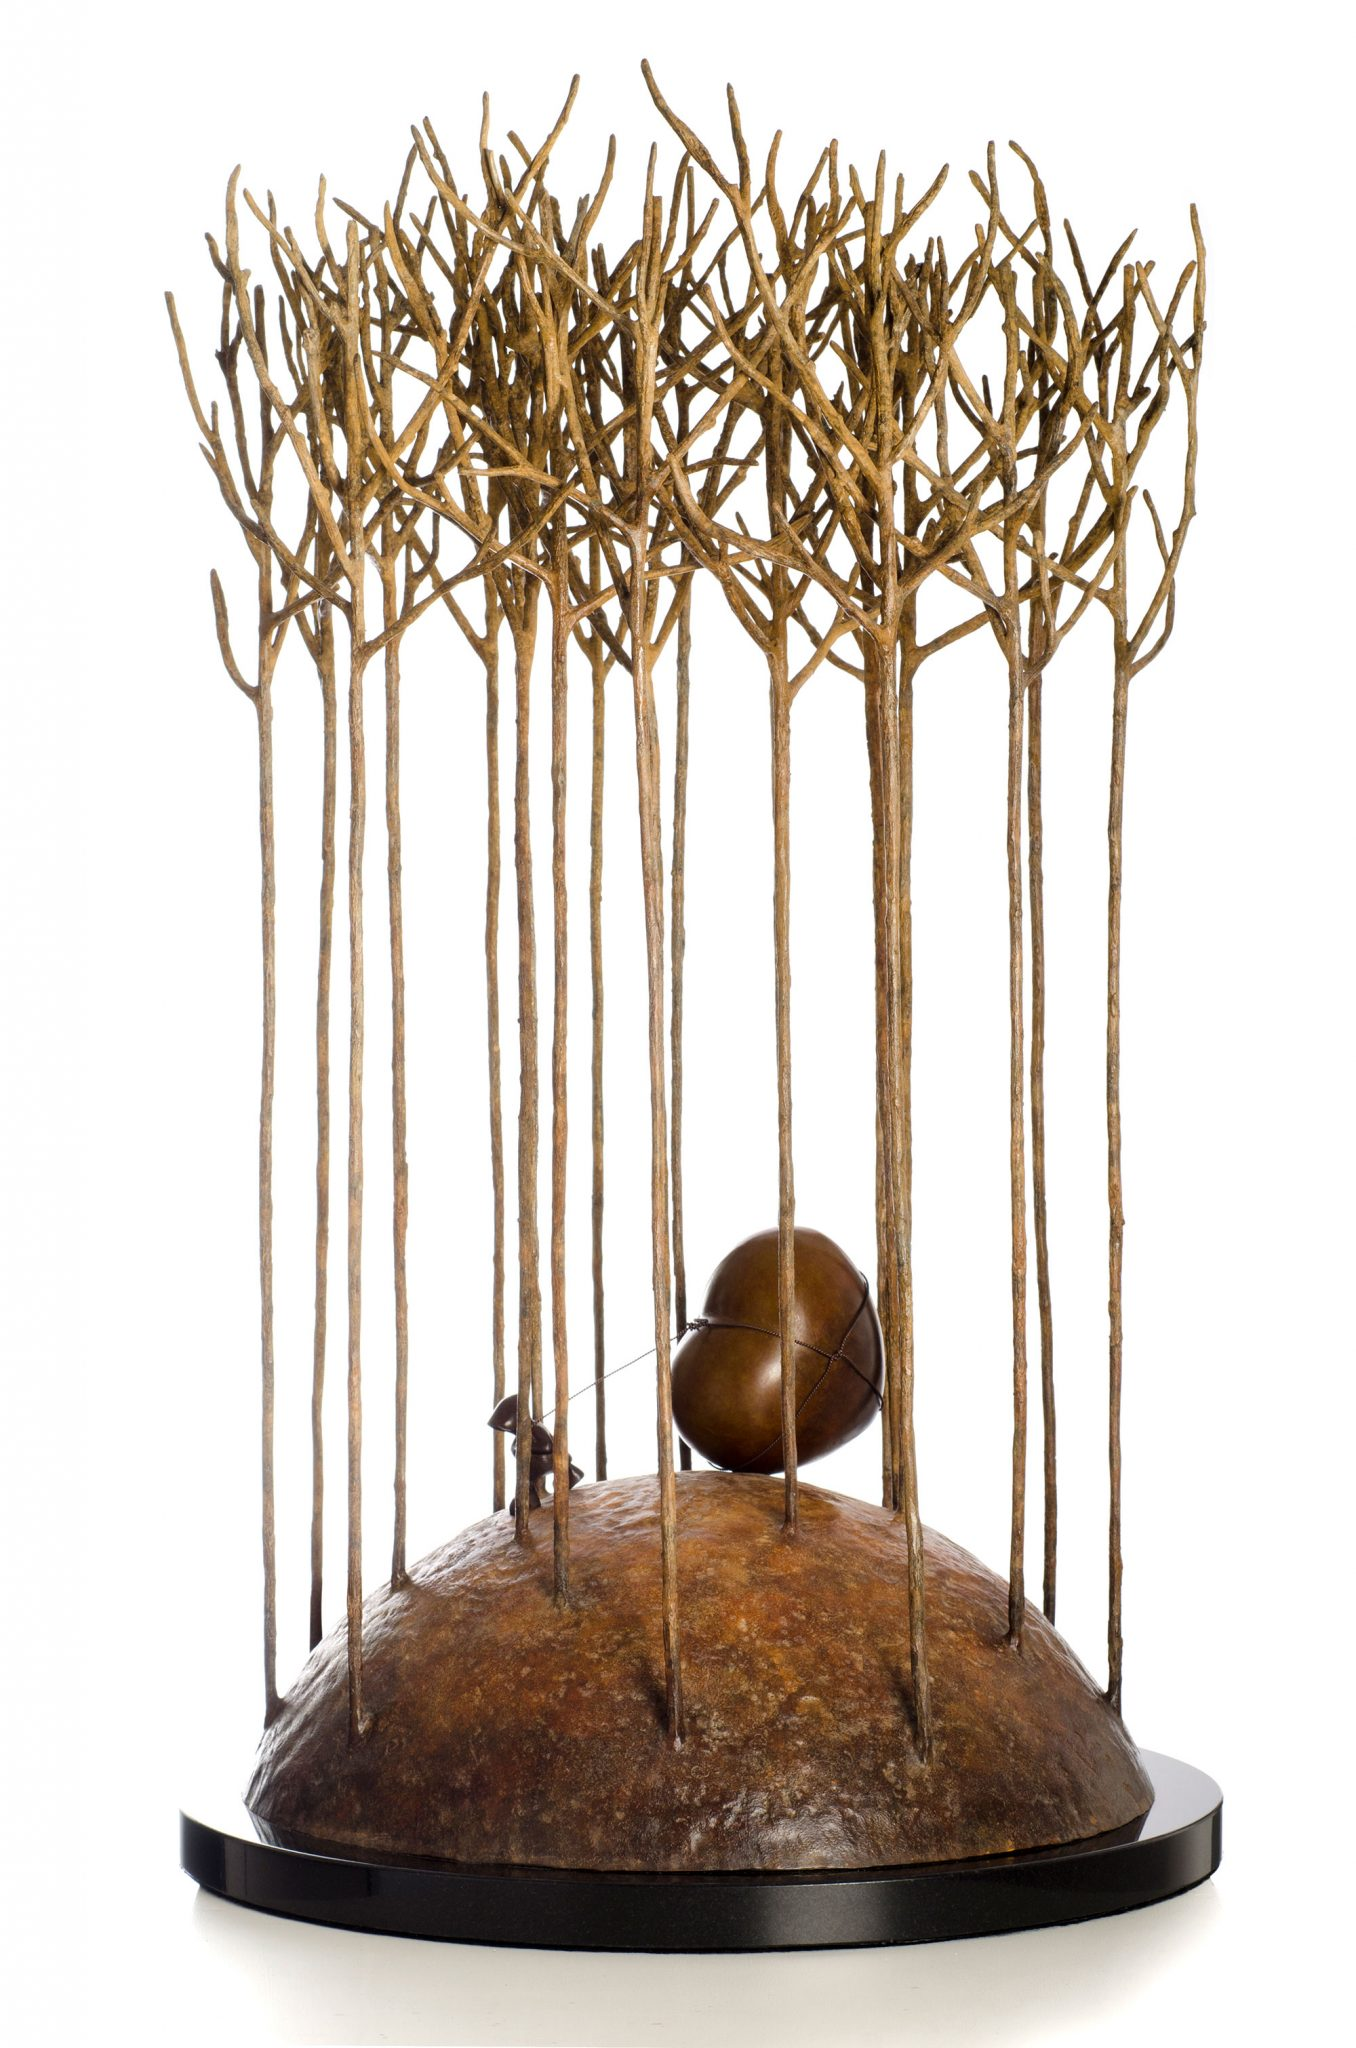 Love in the forest bronze sculpture by Mackenzie Thorpe